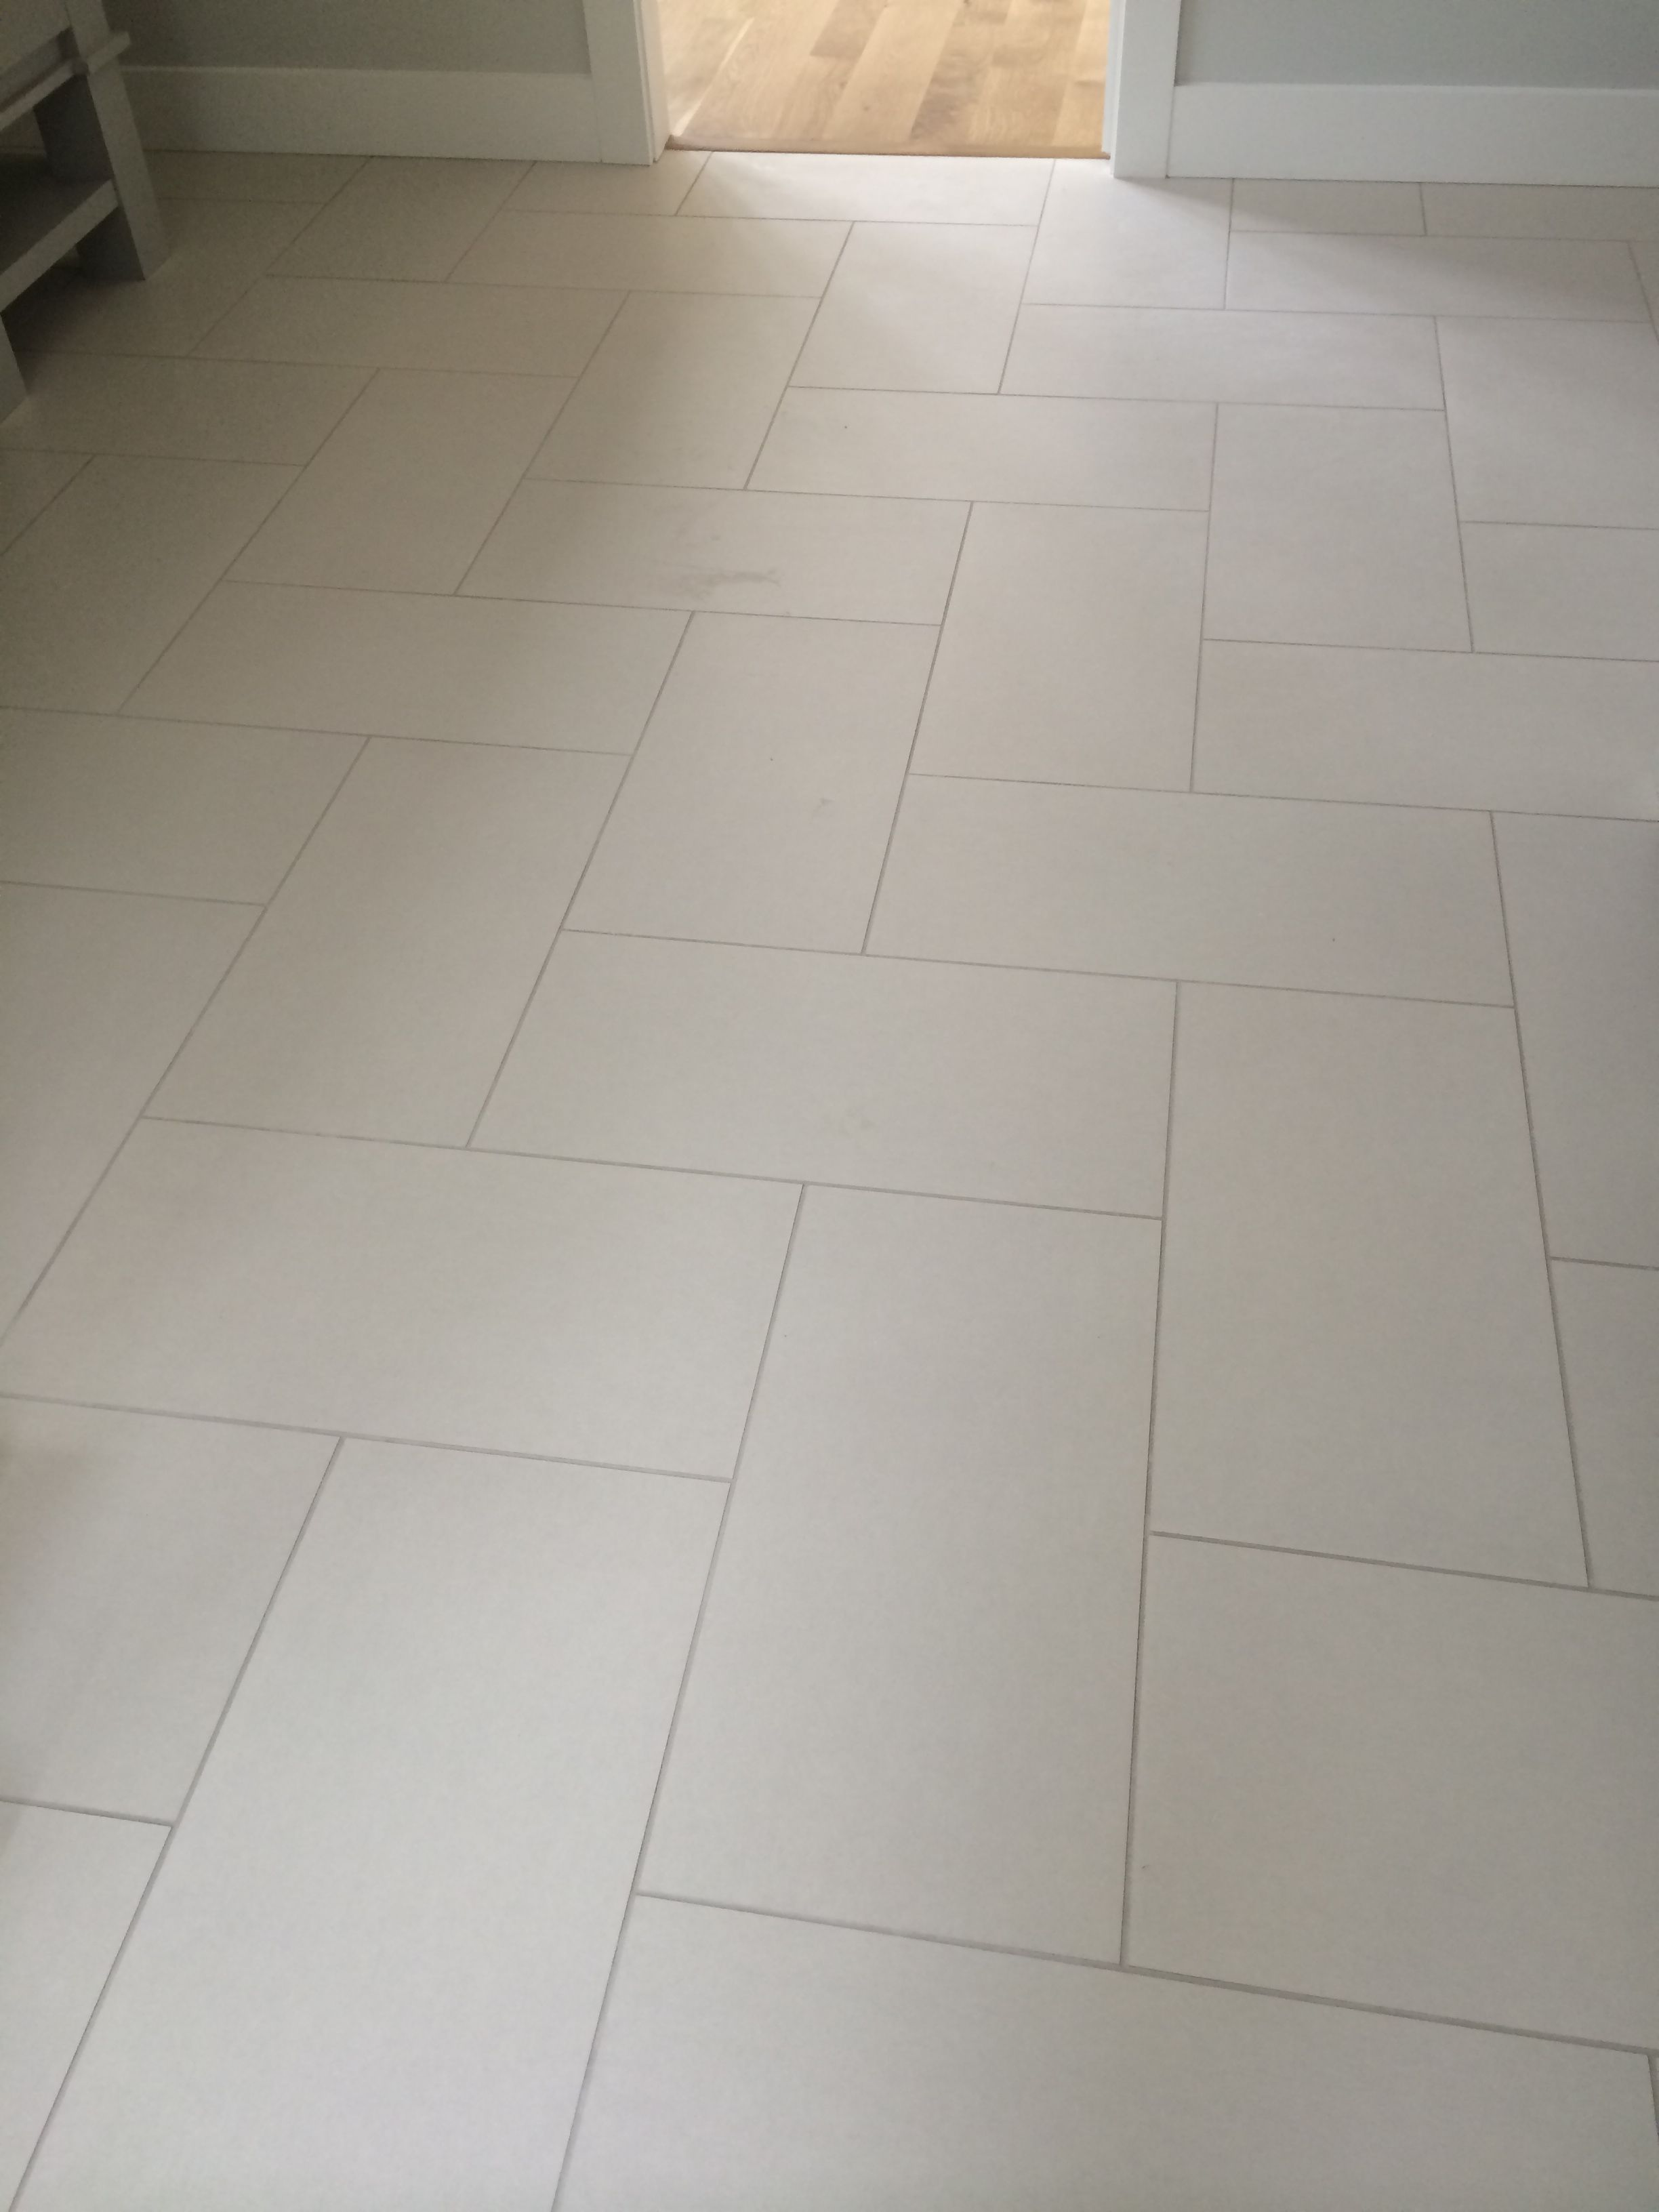 Its all in the detail selecting interior finishes grey grout its all in the detail selecting interior finishes tile floor dailygadgetfo Choice Image